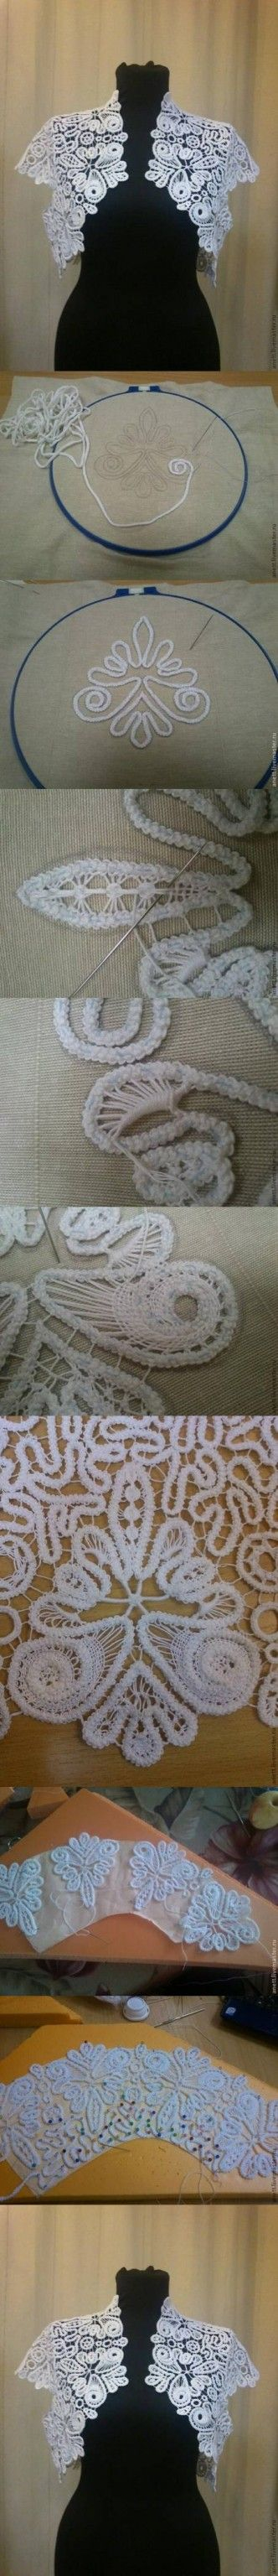 336 best artcraft yarn string images on pinterest hand crafts crochet lacework tutorial diy romanian lace projects solutioingenieria Images